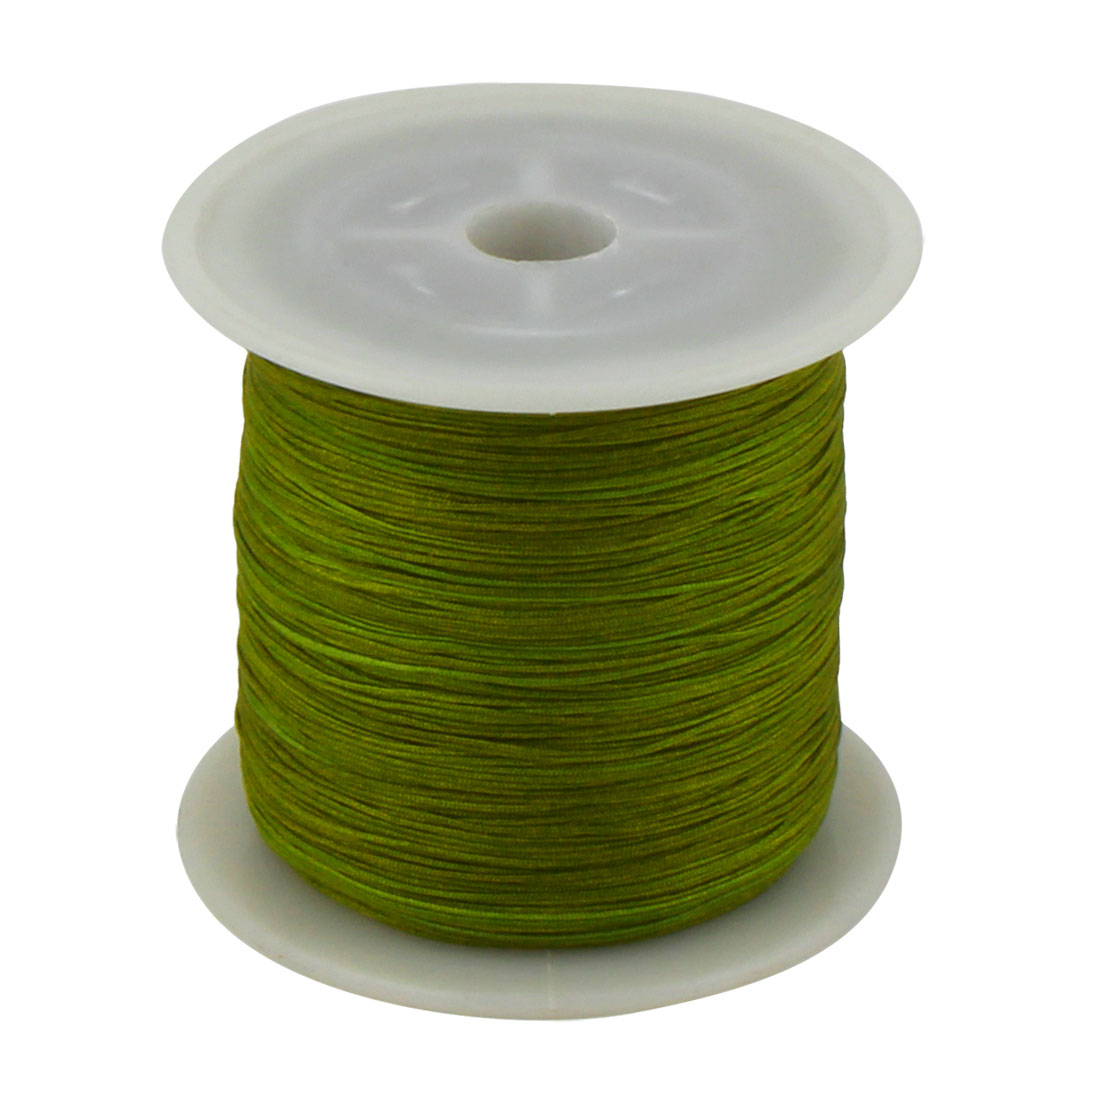 Nylon DIY Art Craft Braided Chinese Knot Cord String Roll Olive Green 153 Yards